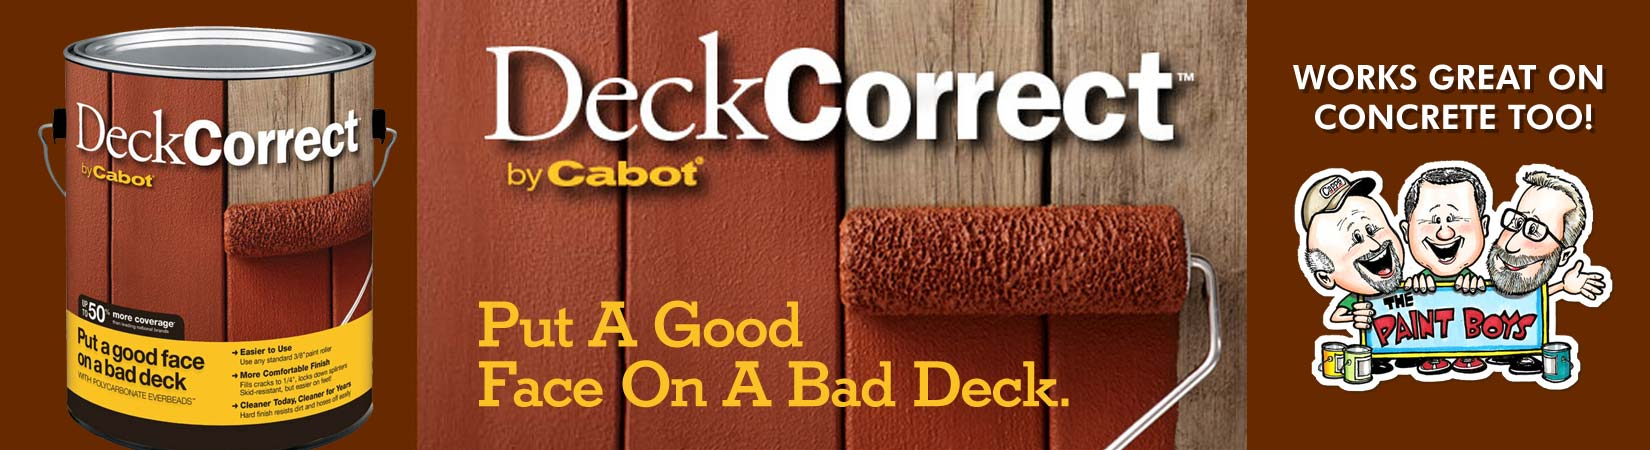 Deck Correct by Cabot image